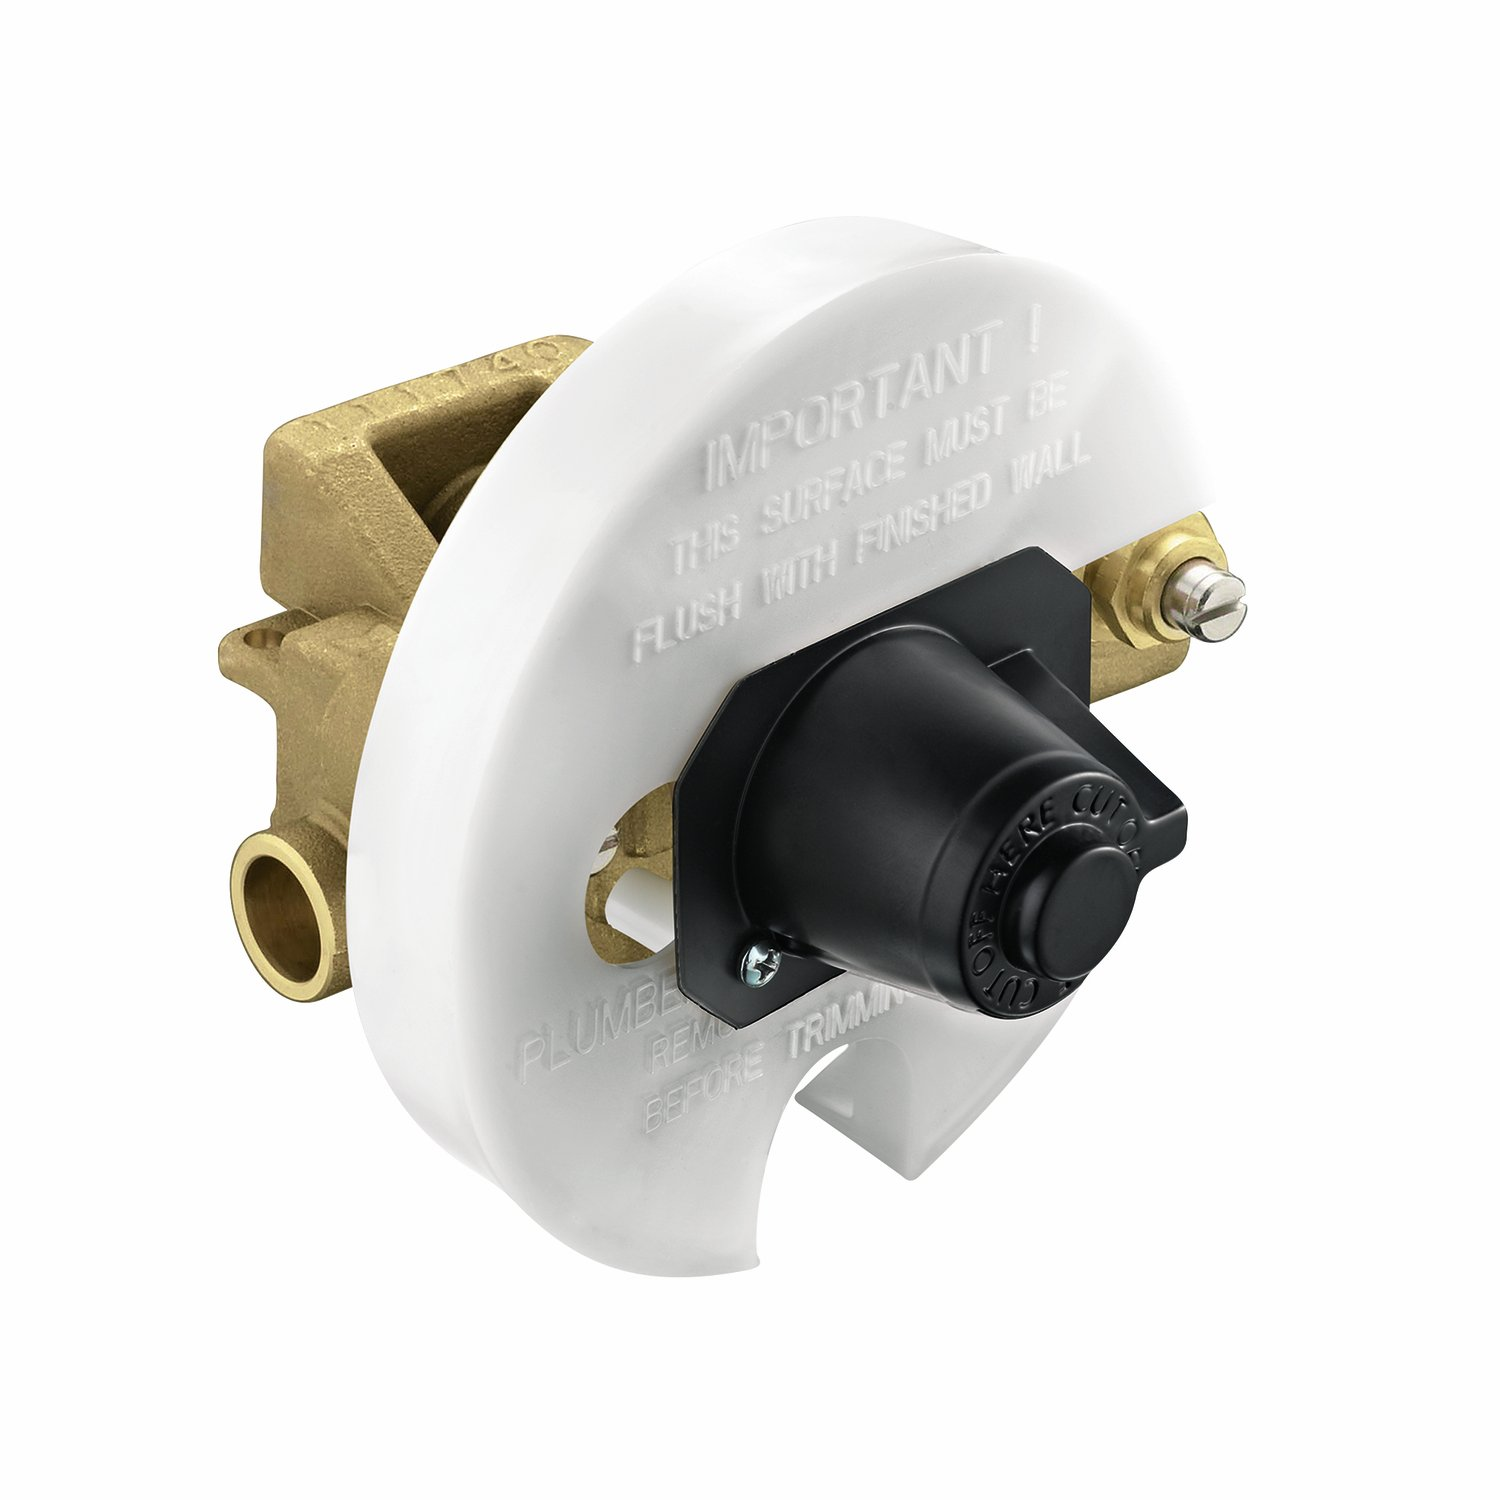 Moen 3570 M-PACT Moentrol Shower Valve with Stops, 1/2-Inch CC